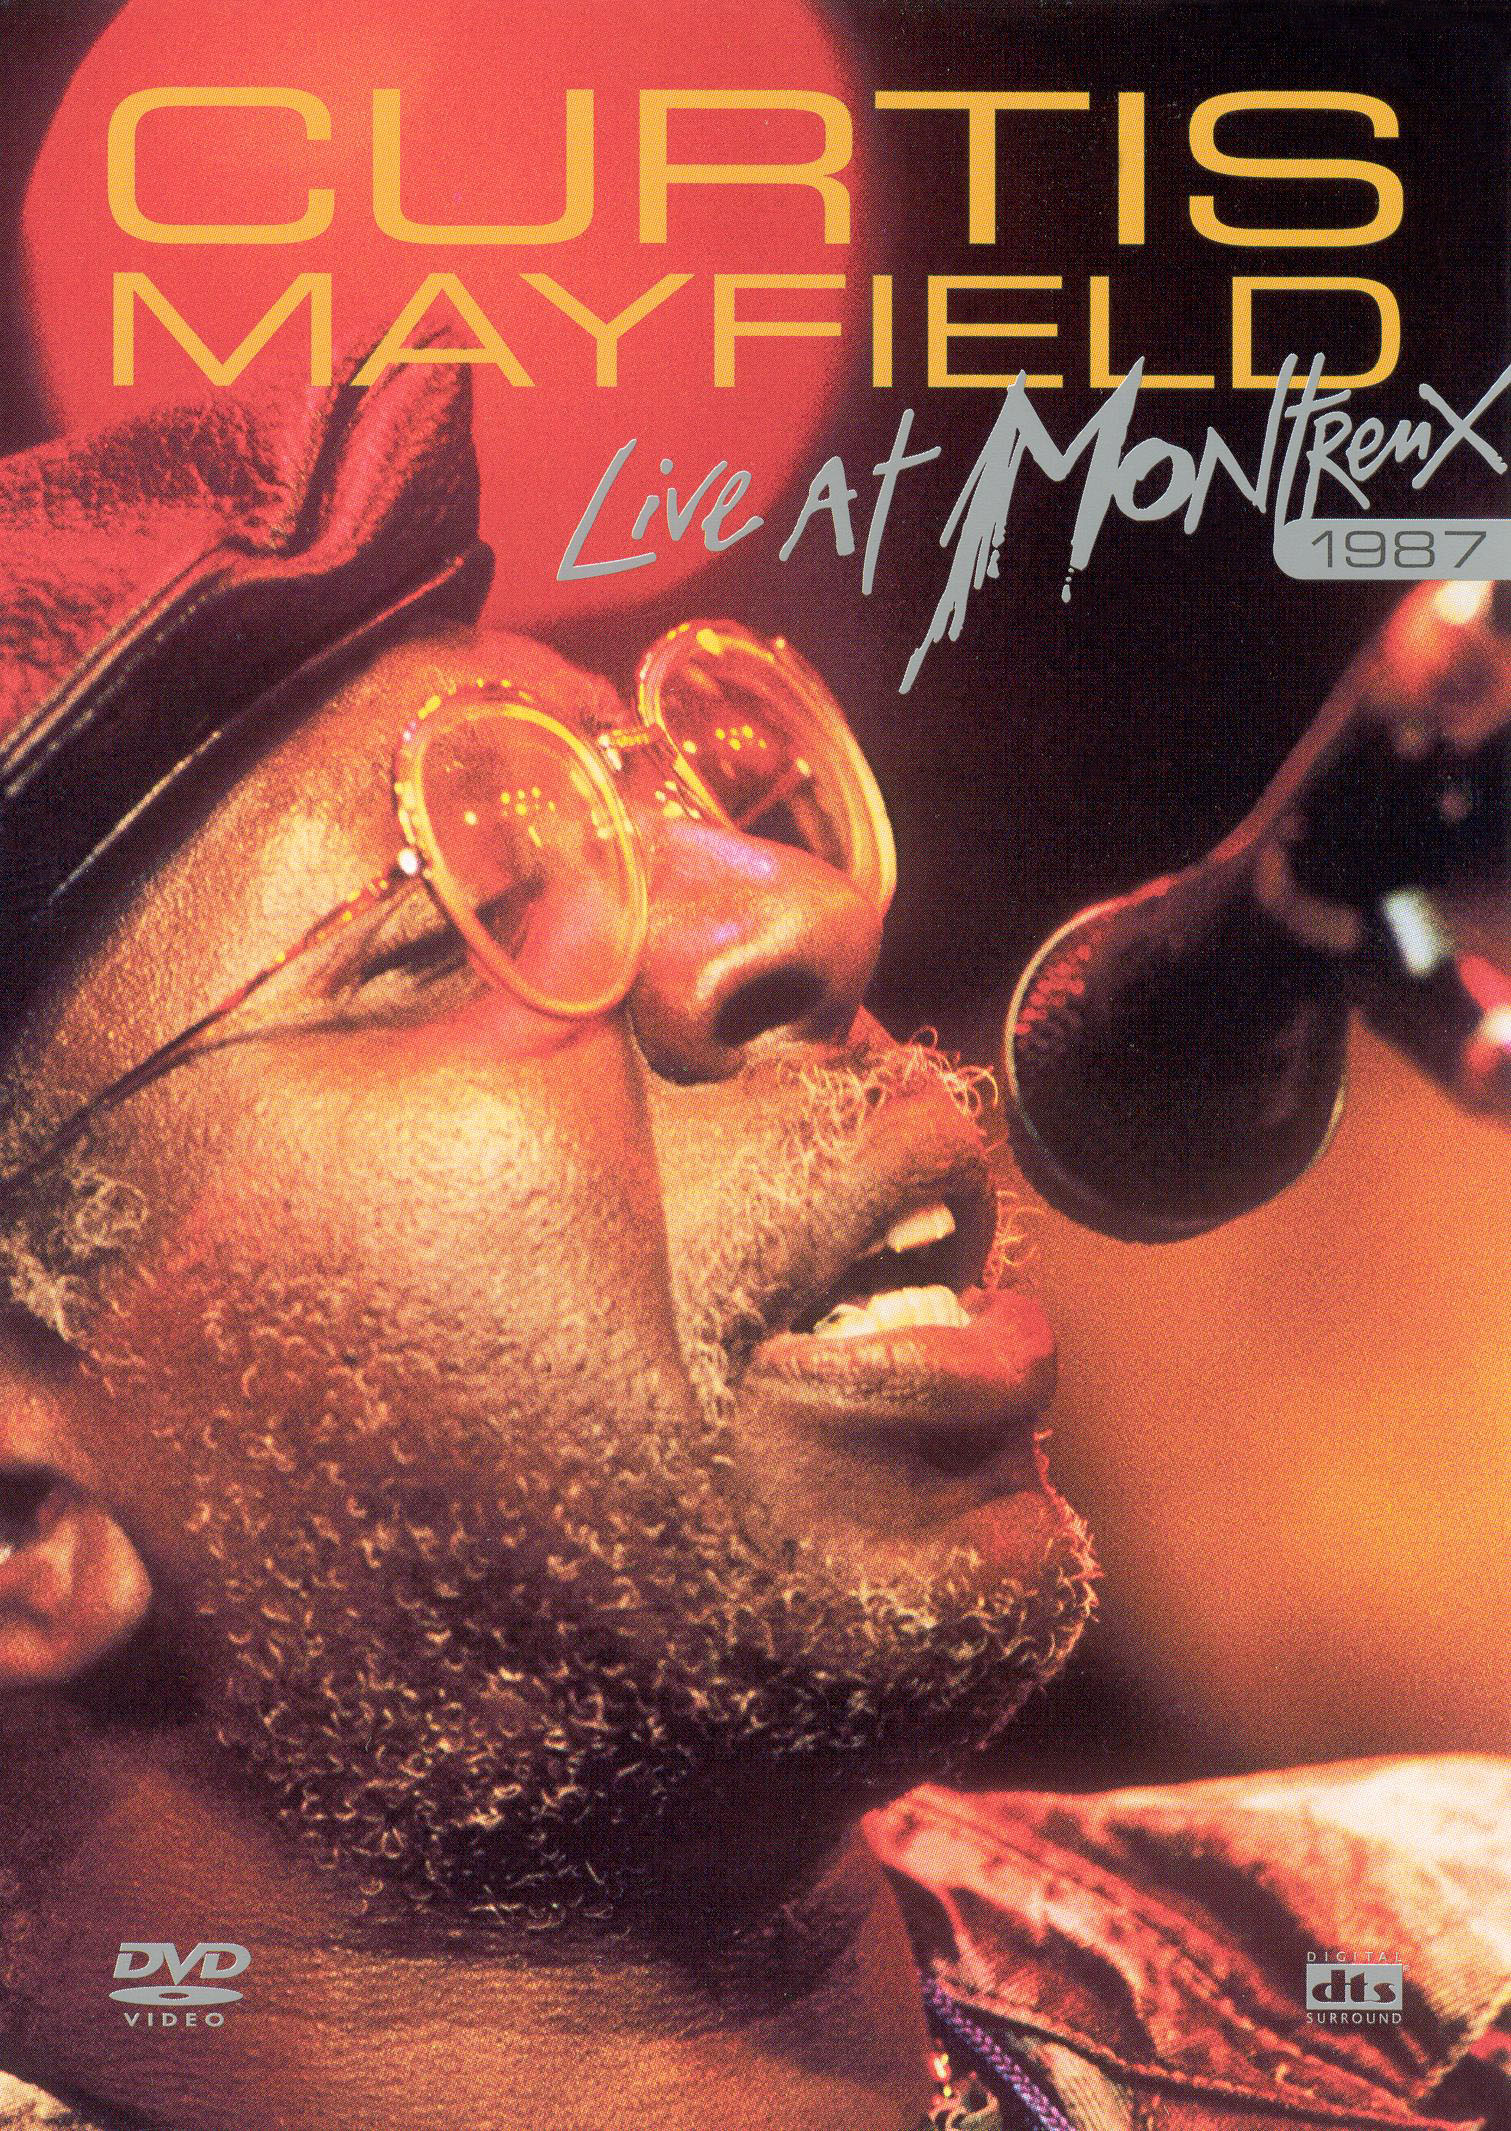 Curtis Mayfield: Live at Montreux, 1987